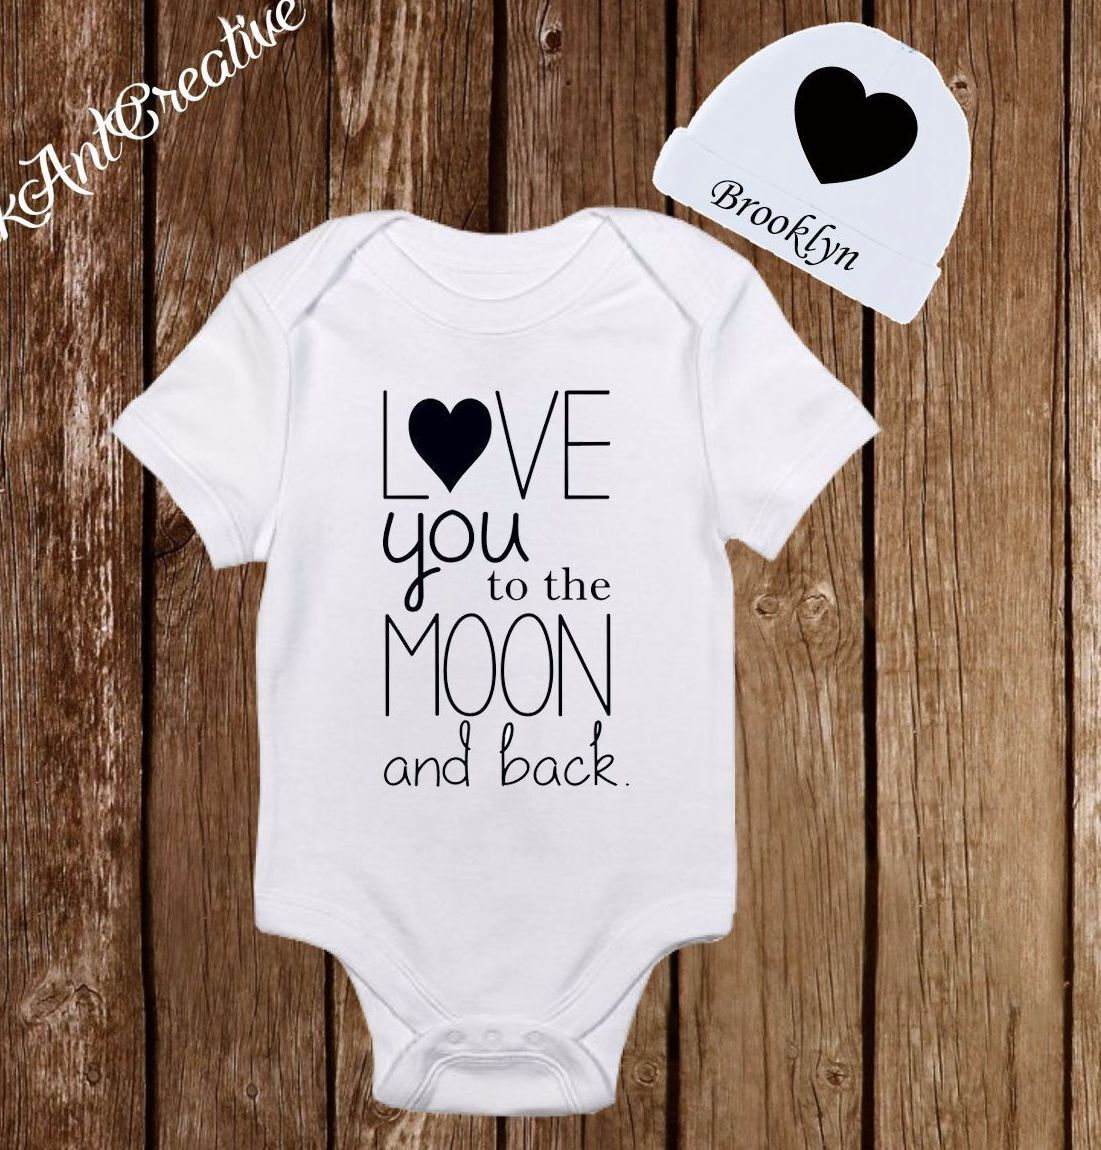 Love you to the moon & back Baby Clothes Onesies Hat Shower